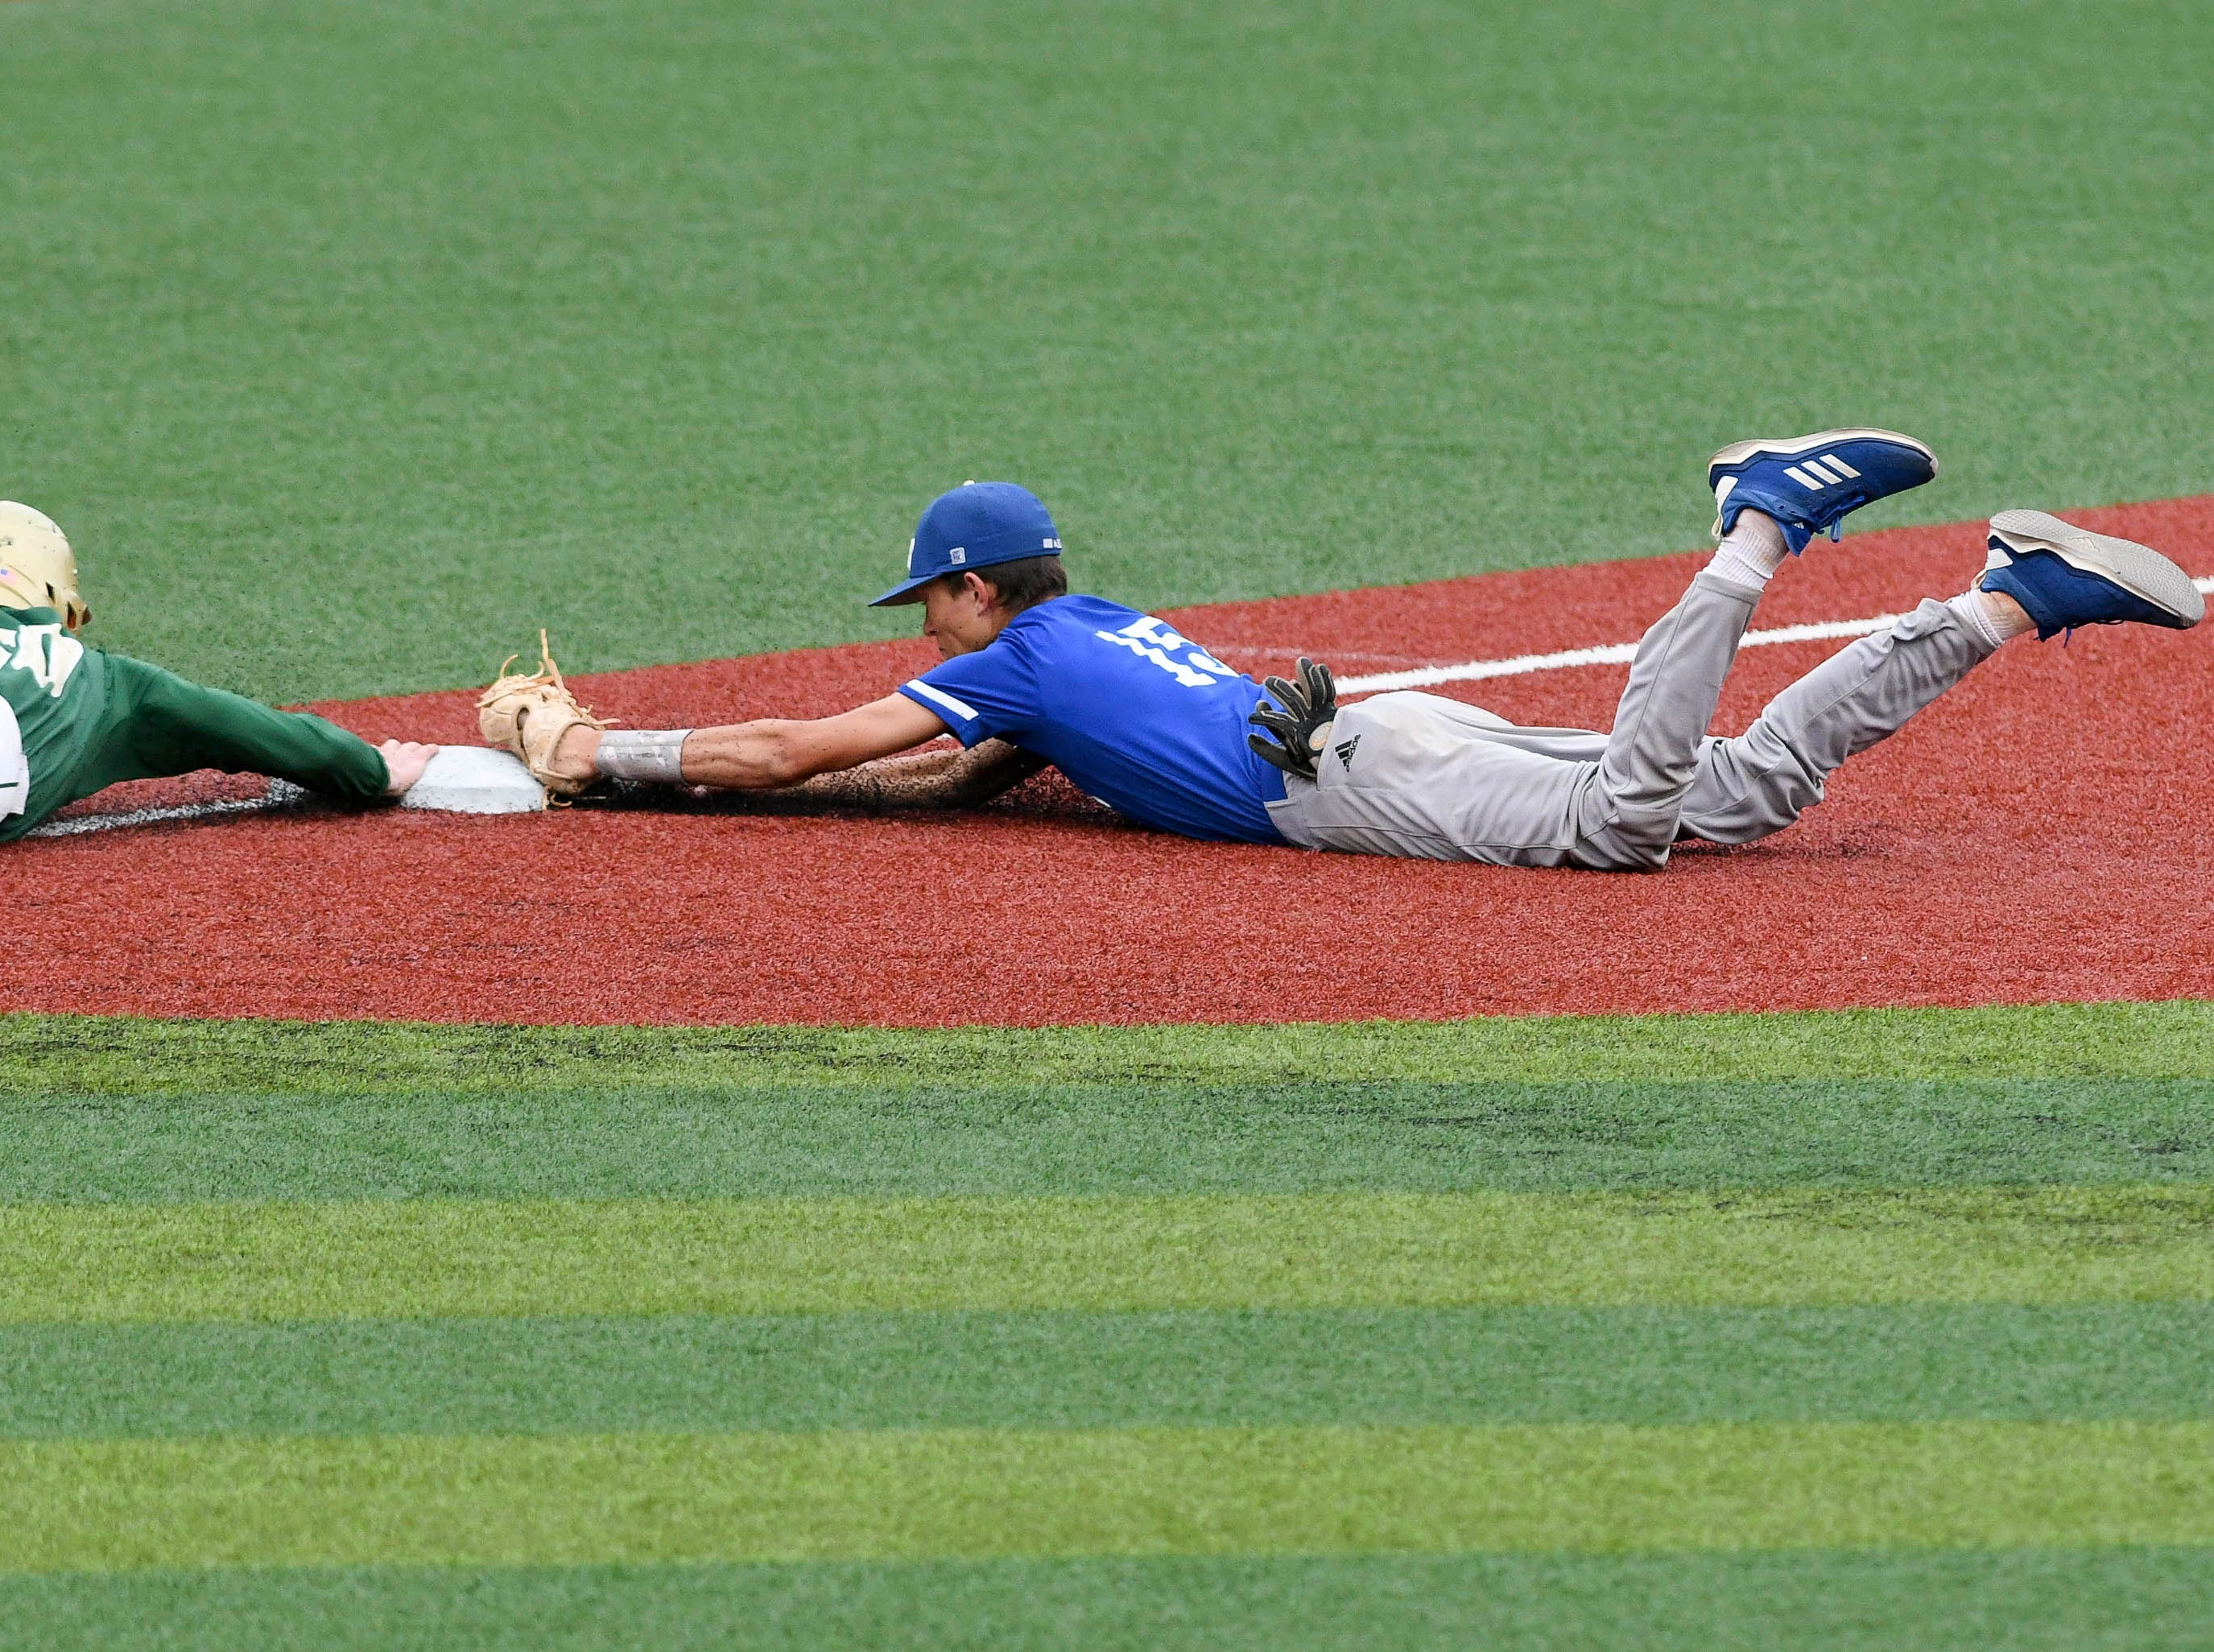 JT Muller of Sebastian River beats Viera's JT Smith back to third to complete a double play during Wednesday's game at USSSA Space Coast Stadium.